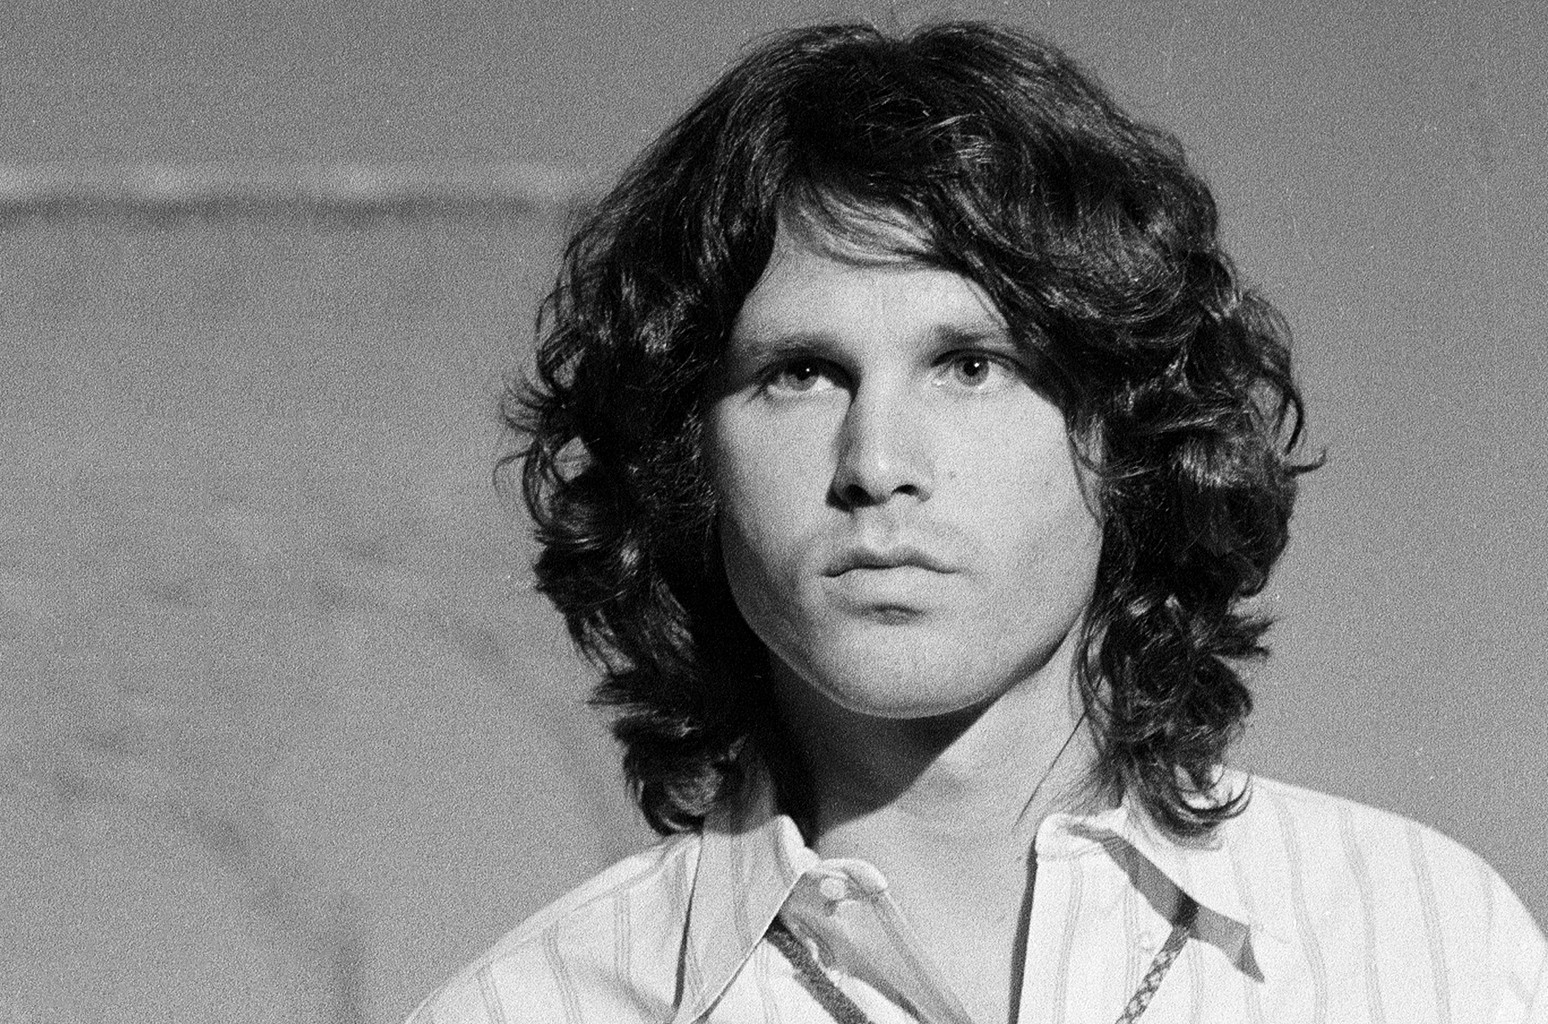 Jim Morrison of The Doors photographed on Jan. 6, 1969.